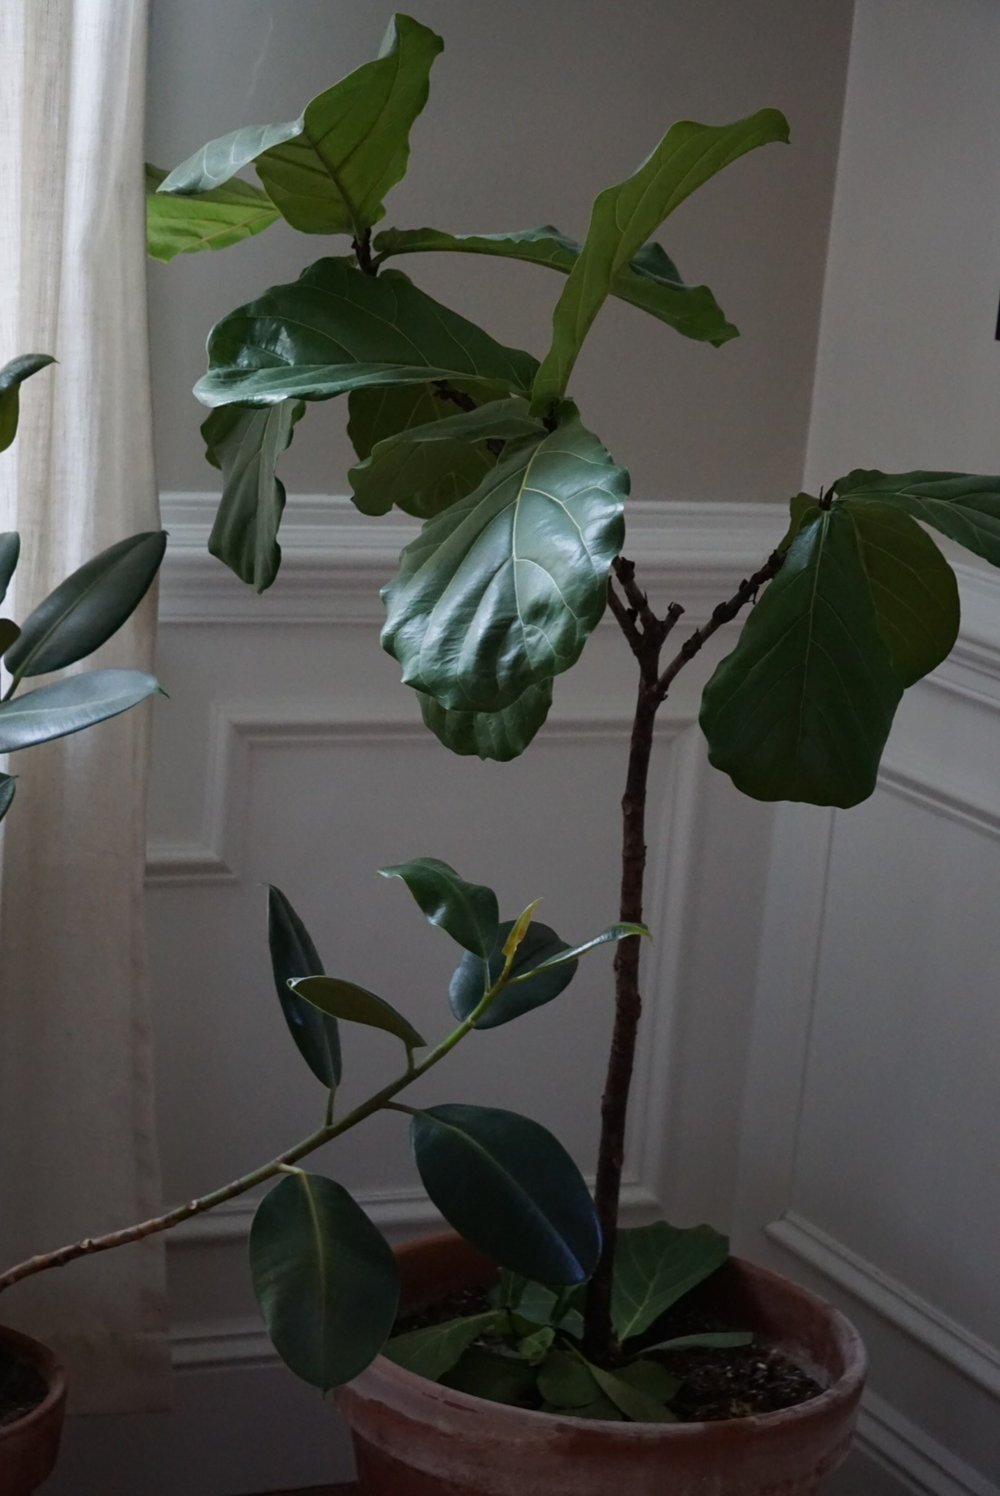 Add year round greenery with houseplants. Not only are they fun to look at, they help purify the air.  -